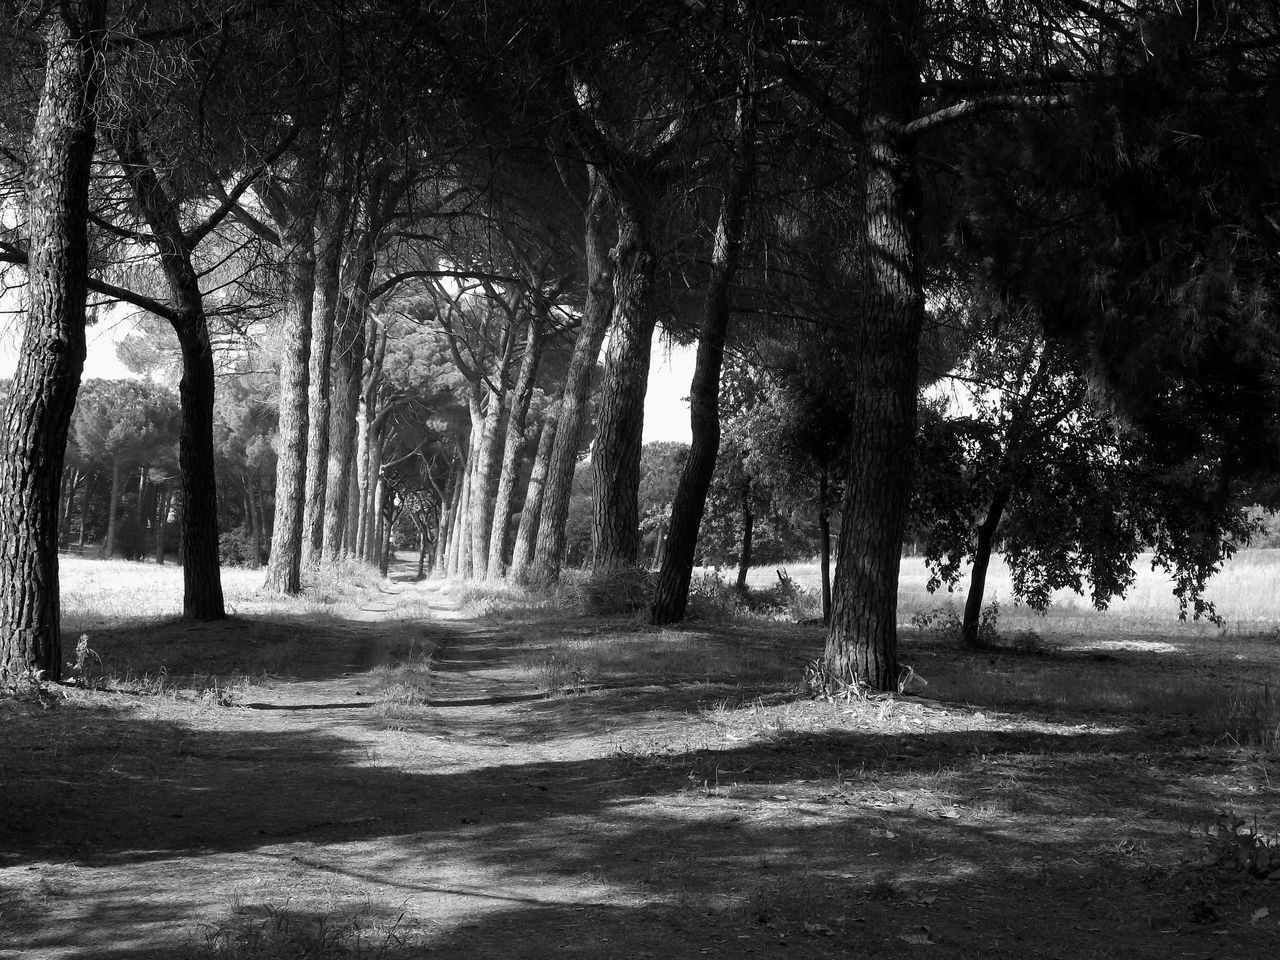 B&W Pine Path Beauty In Nature MUR B&W Mémoires Pine Woodland Pines Pines Forest Pinetrees Roma MUR On EyeEm